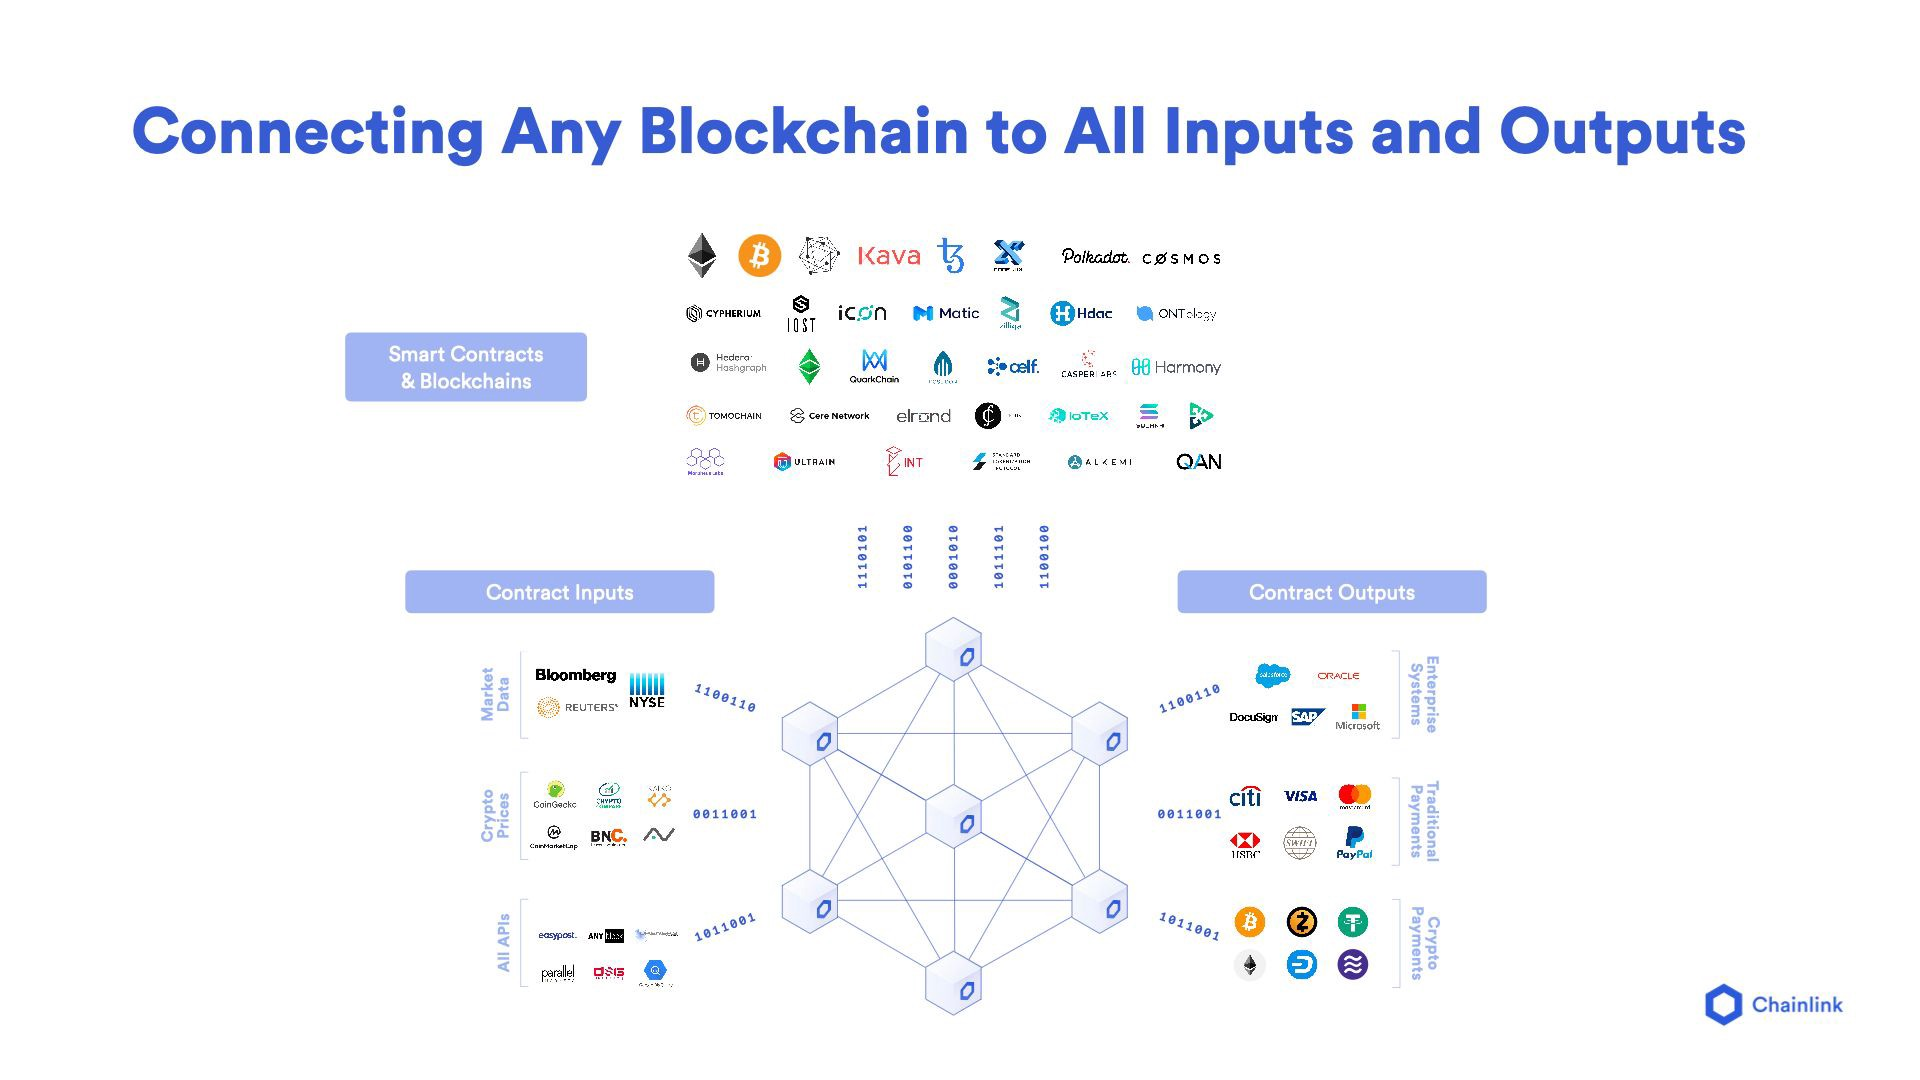 Connecting Any Blockchain to All Inputs and Outputs